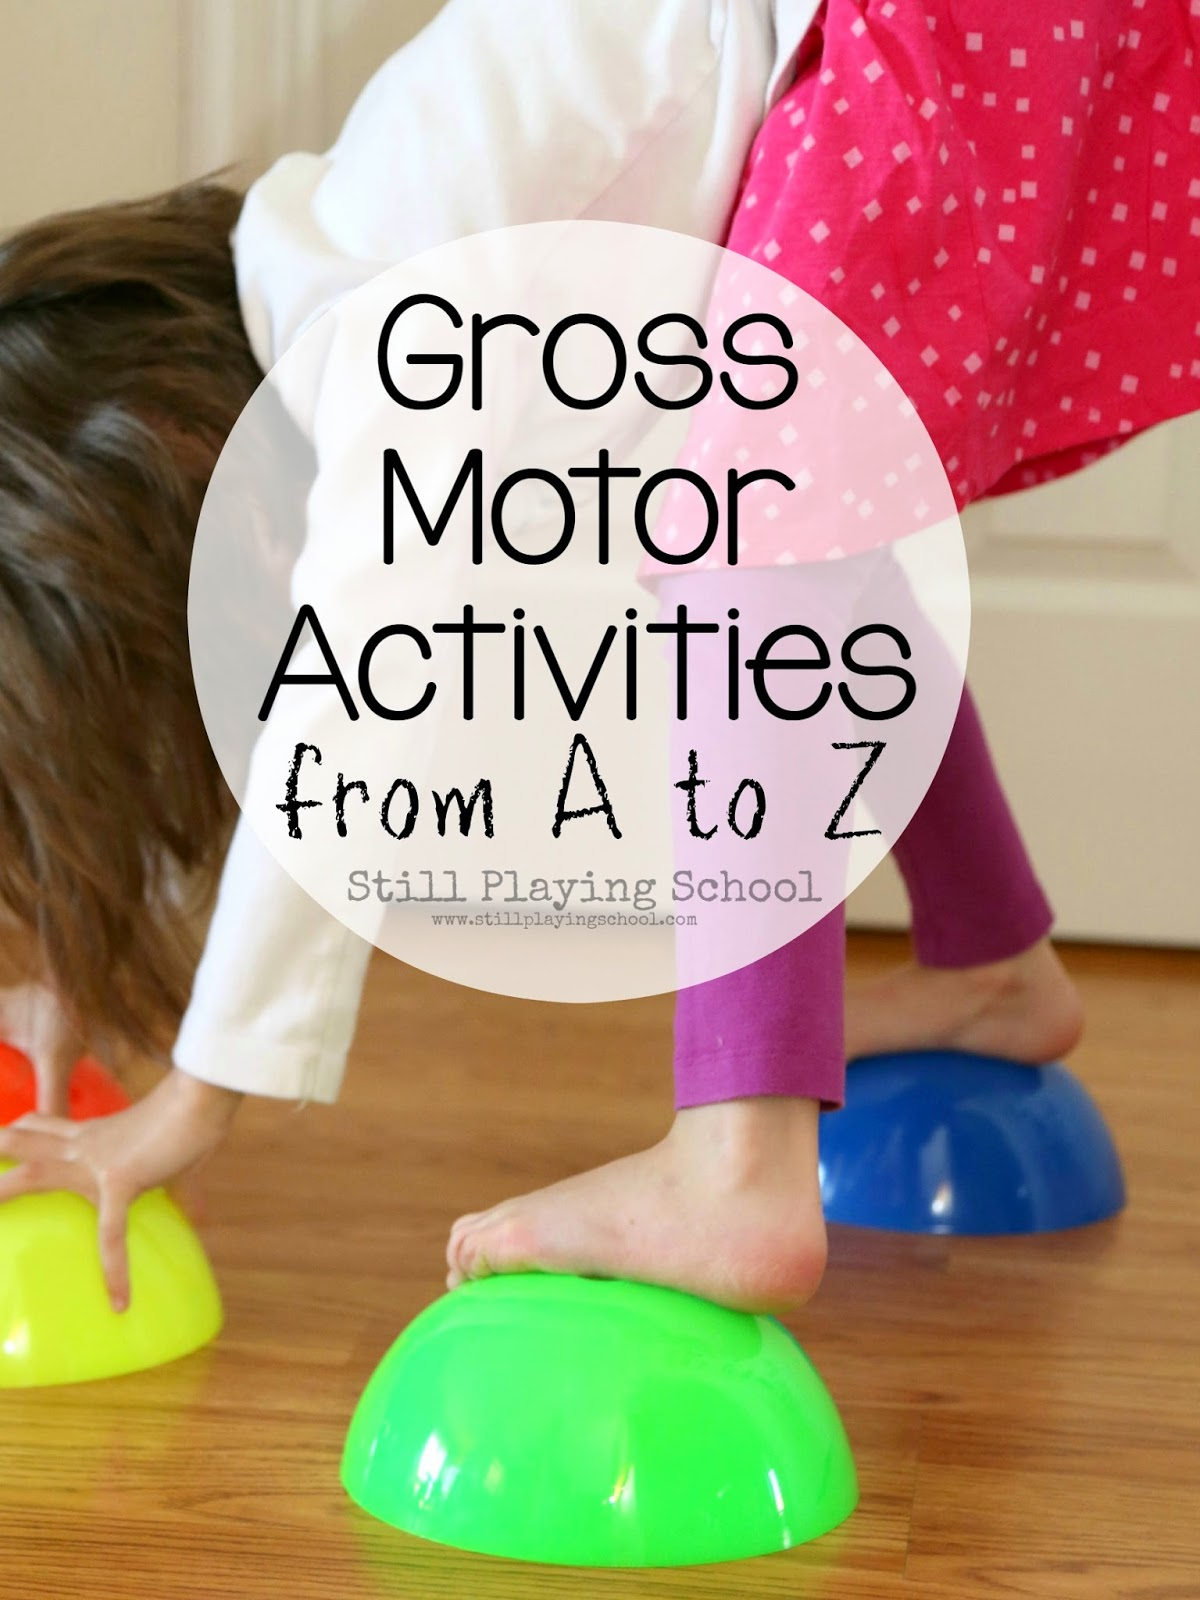 Active games for kids fun gross motor ideas from a to z for Indoor large motor activities for toddlers